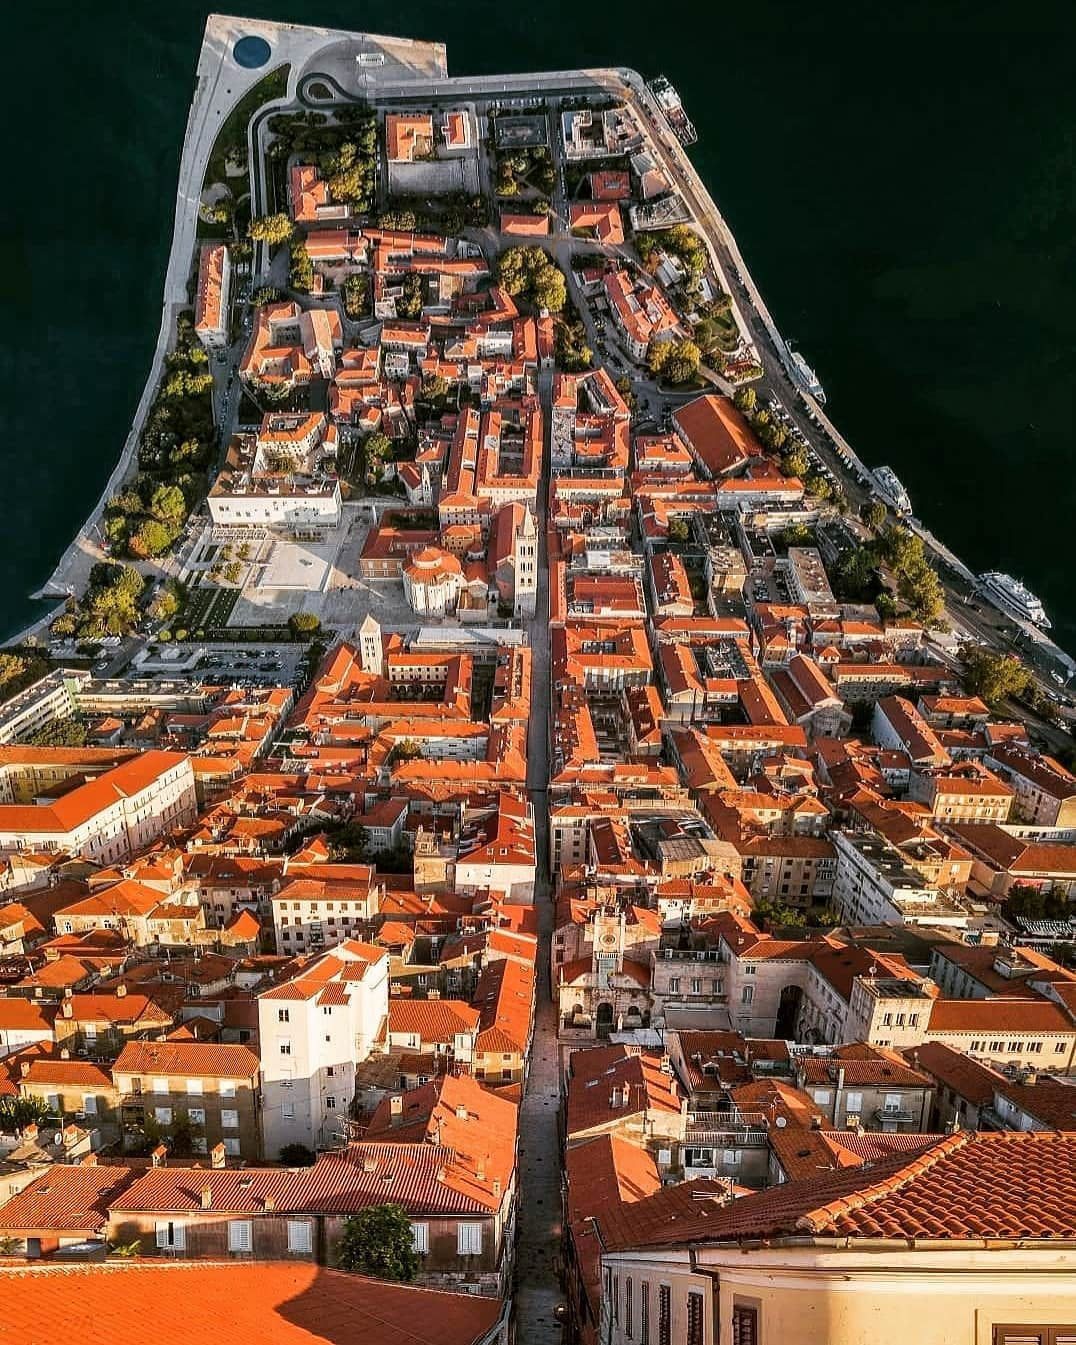 Inception Theme On This Picture Of Zadar Croatia Zadar Croatia Holiday Croatia